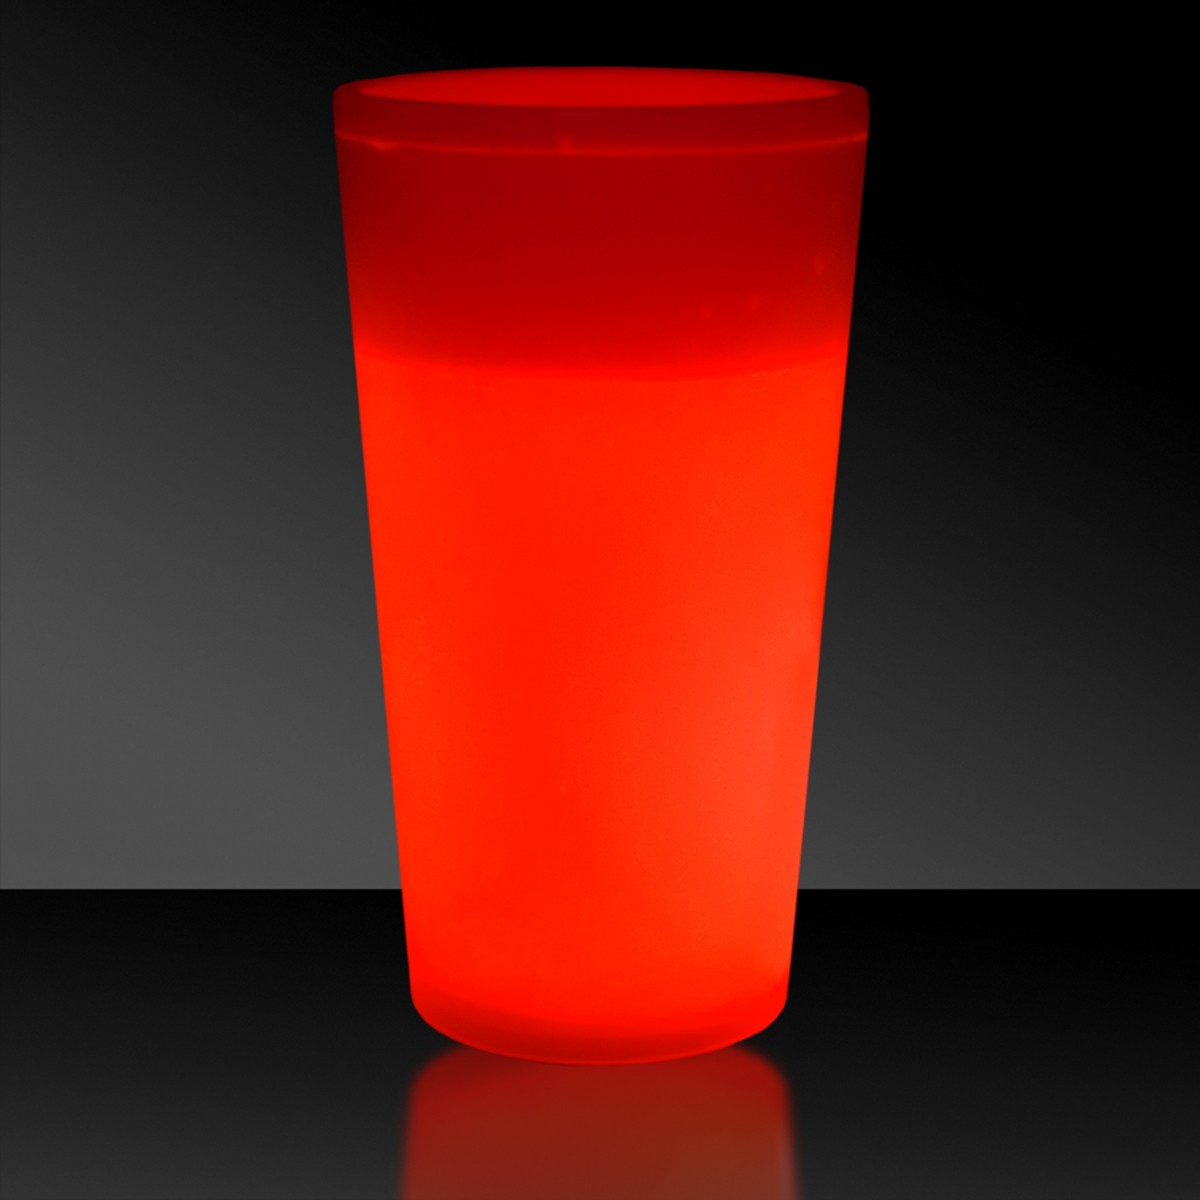 NEW - 12 OZ. RED GLOW CUP